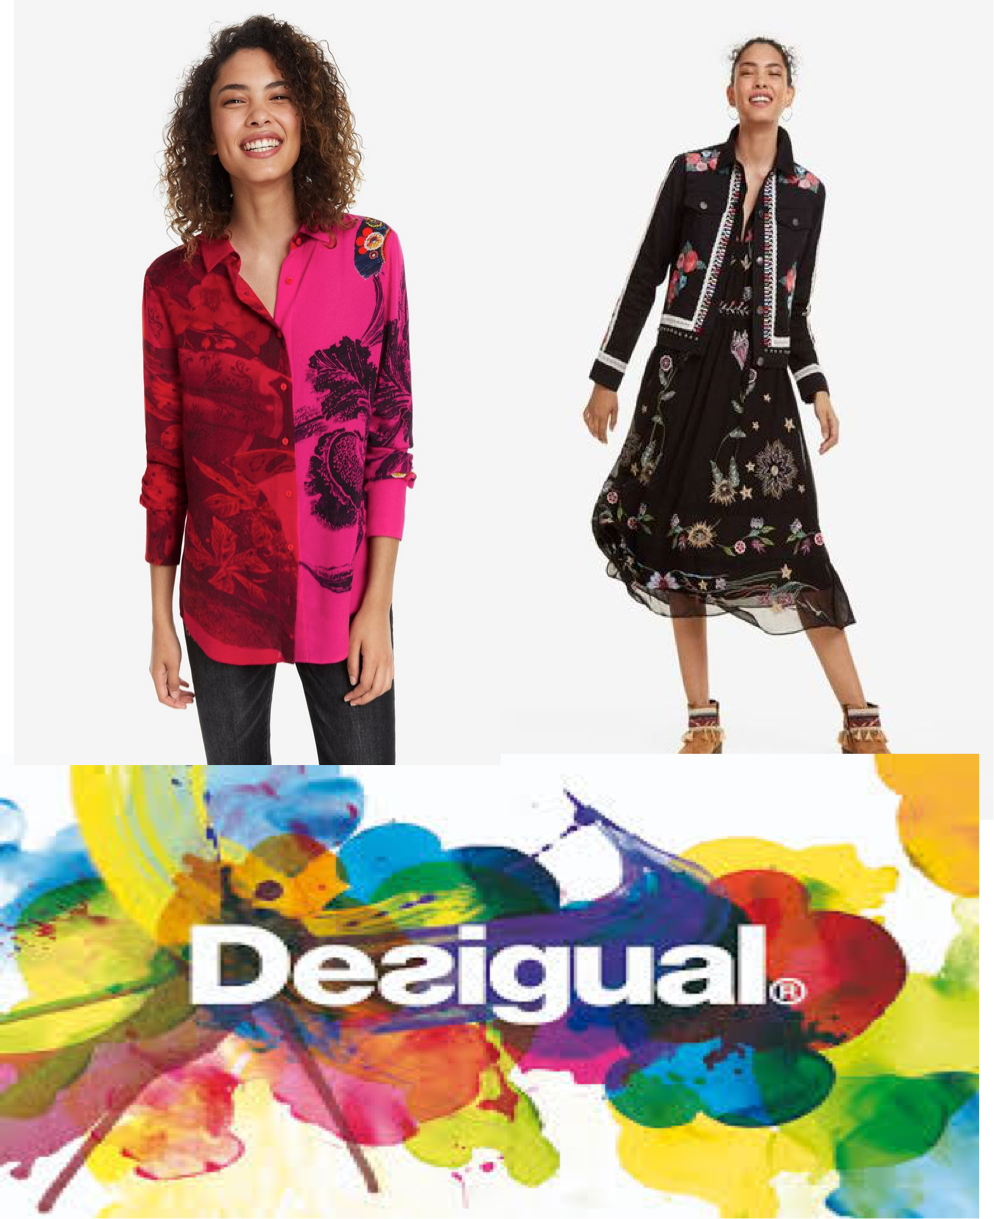 Desigual: Expectation and Reality